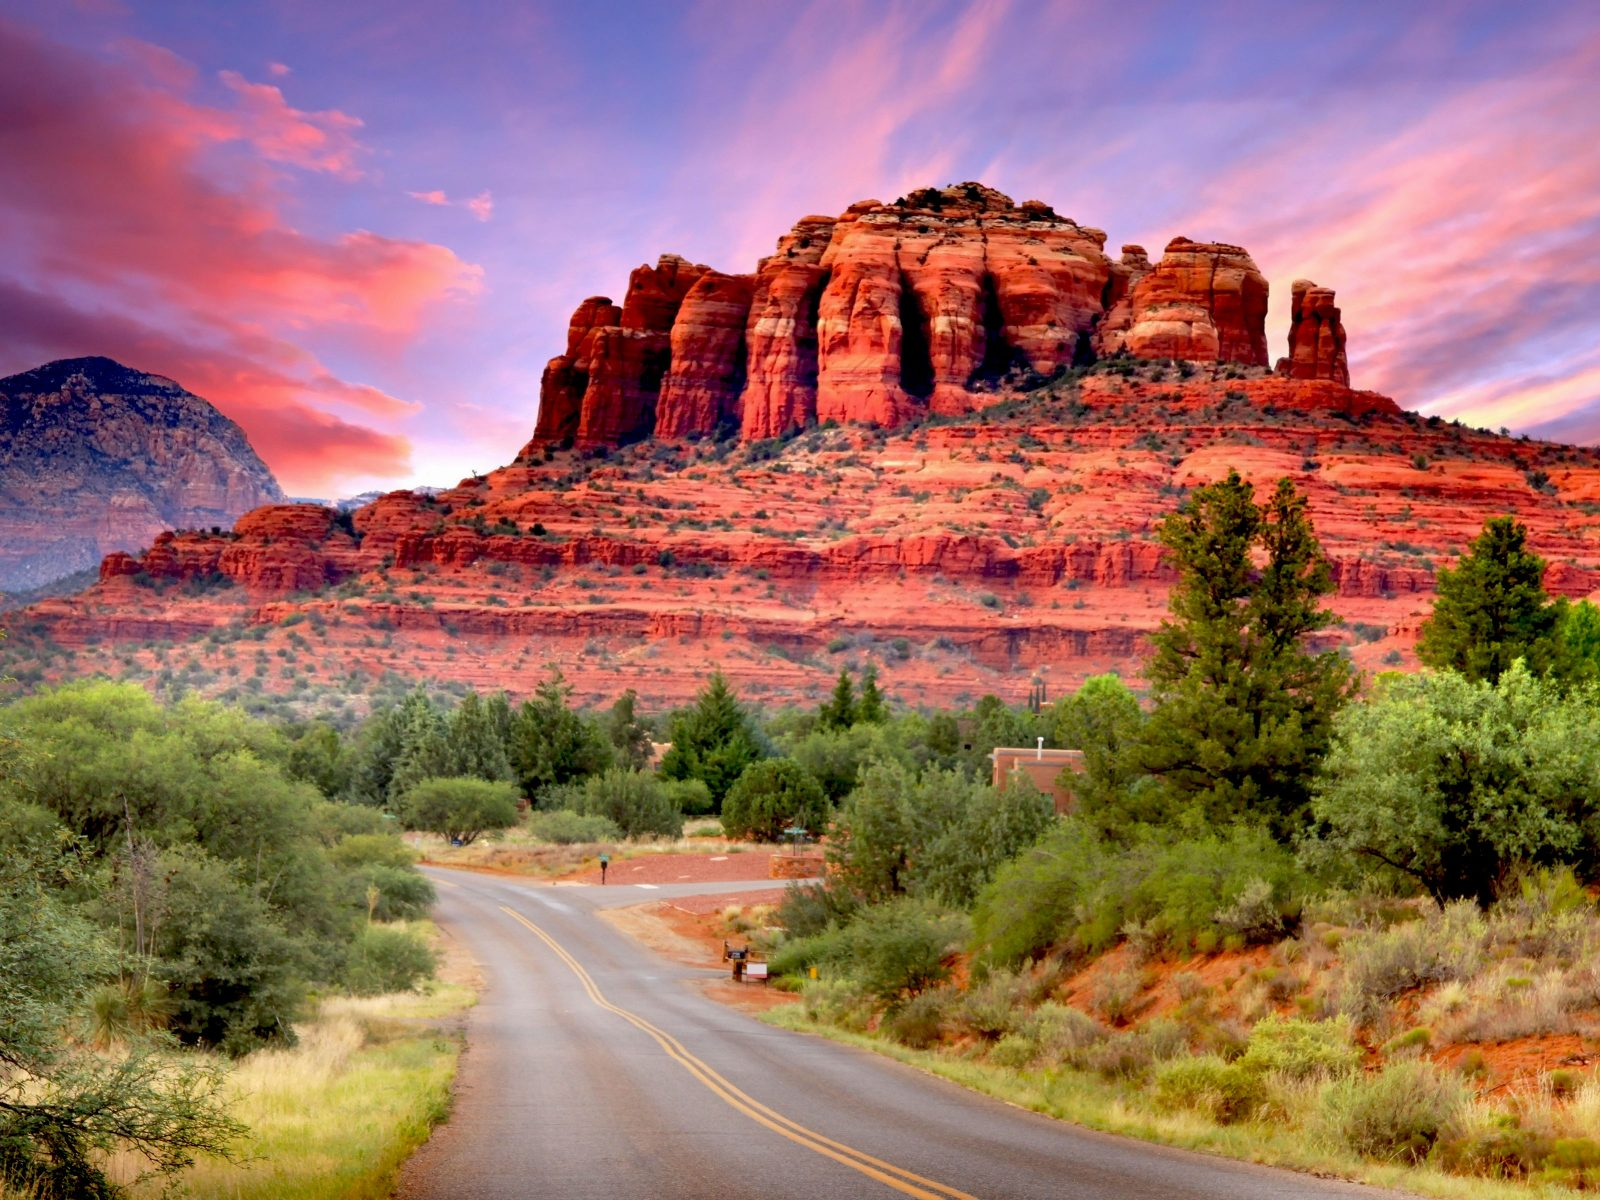 Arizona Wallpaper Pictures to Pin on Pinterest - PinsDaddy